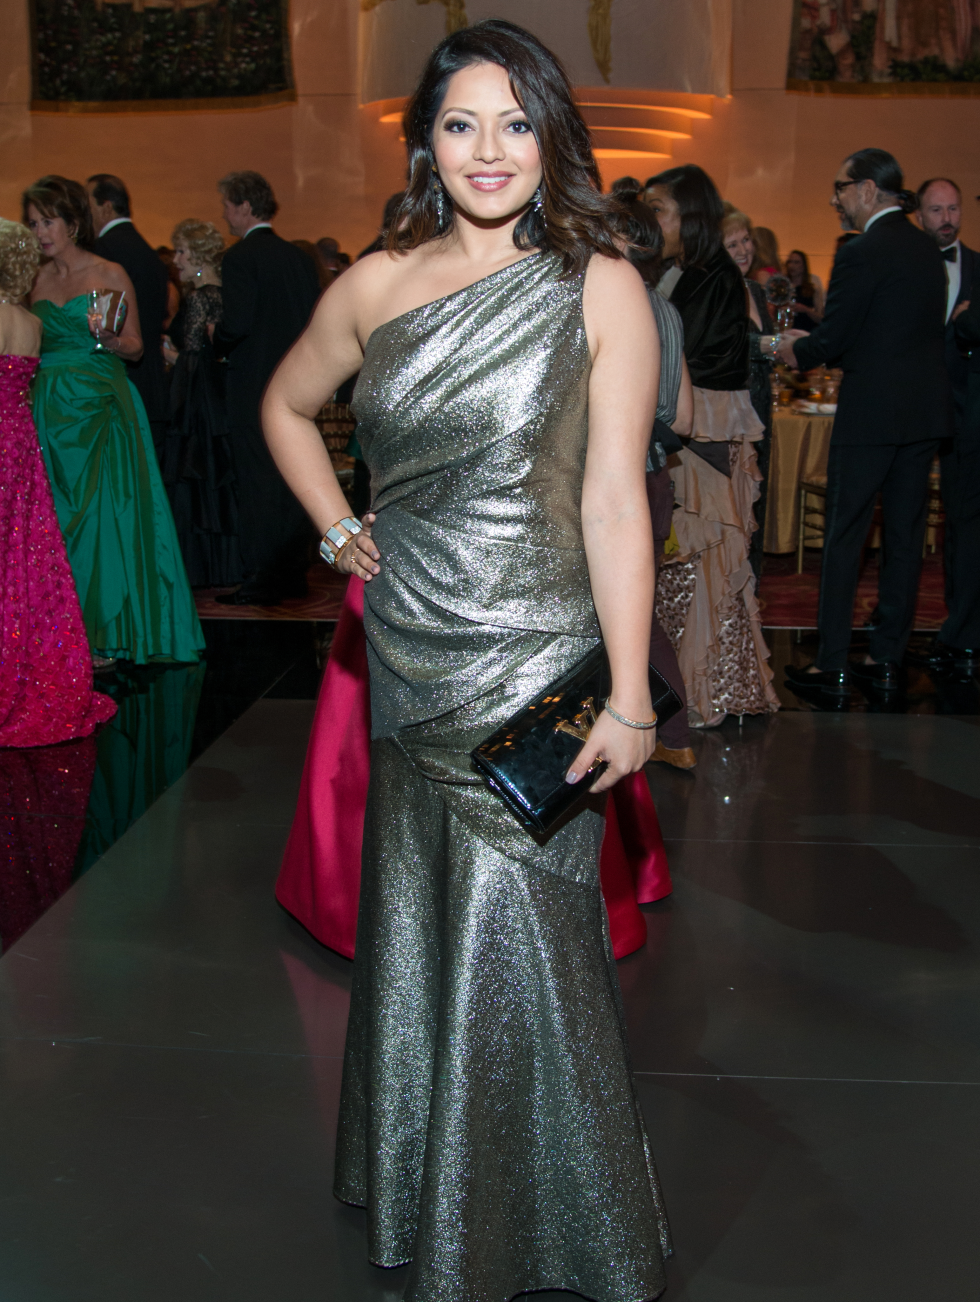 Houston, Ballet Ball gowns, Feb 2017, Rekha Muddaraj in Carmen Marc Valvo